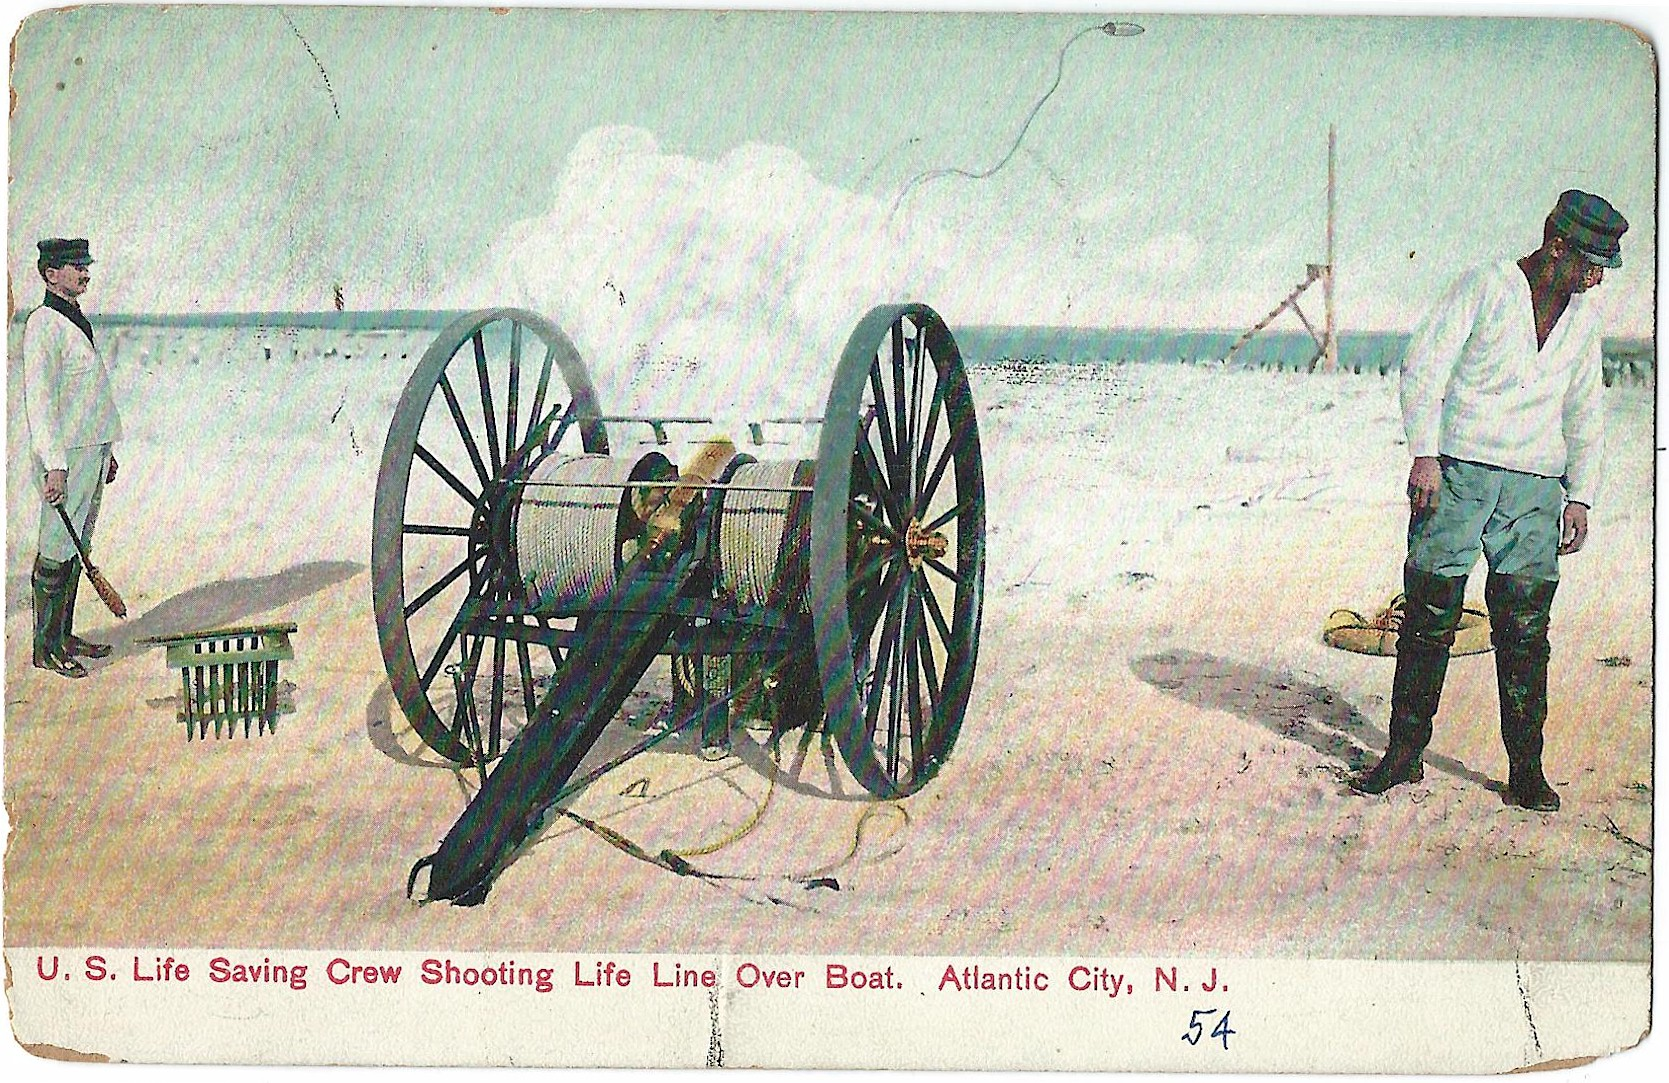 U S  Life Saving Crew Shooting Life Line Over Boat, Atlantic